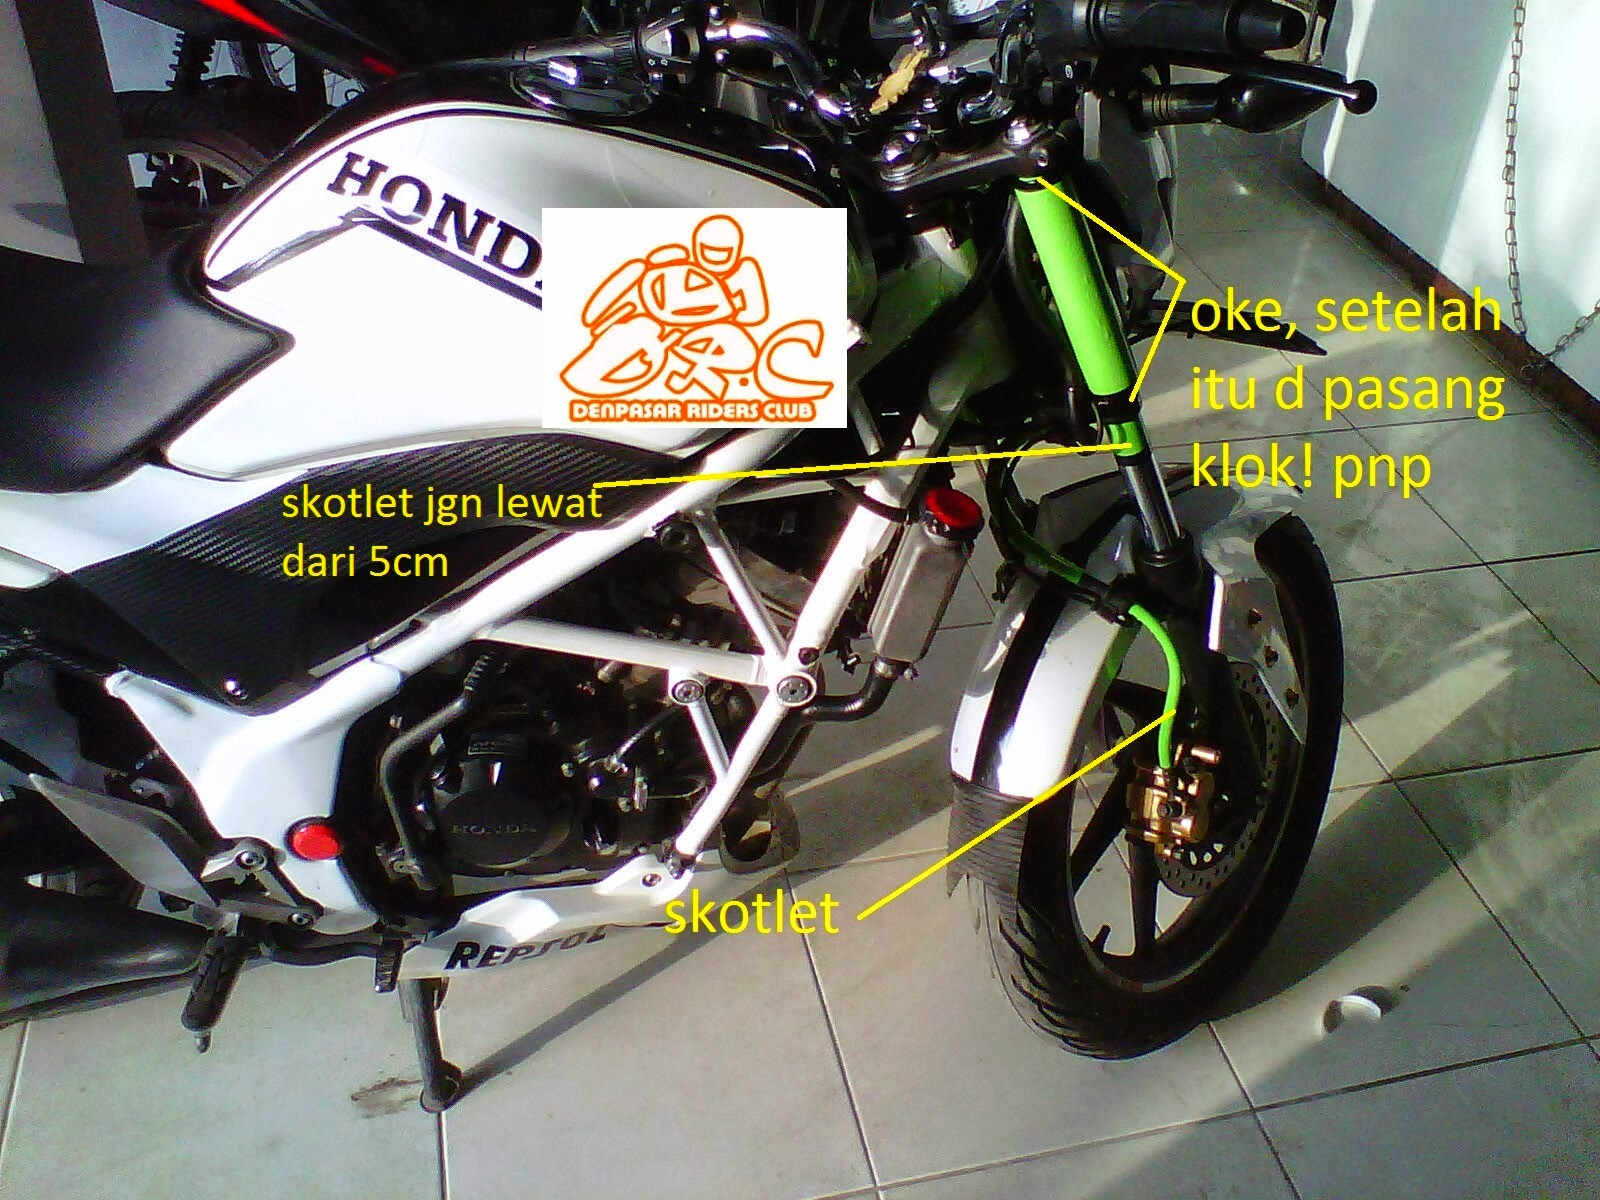 cb150r modifikasi fairing